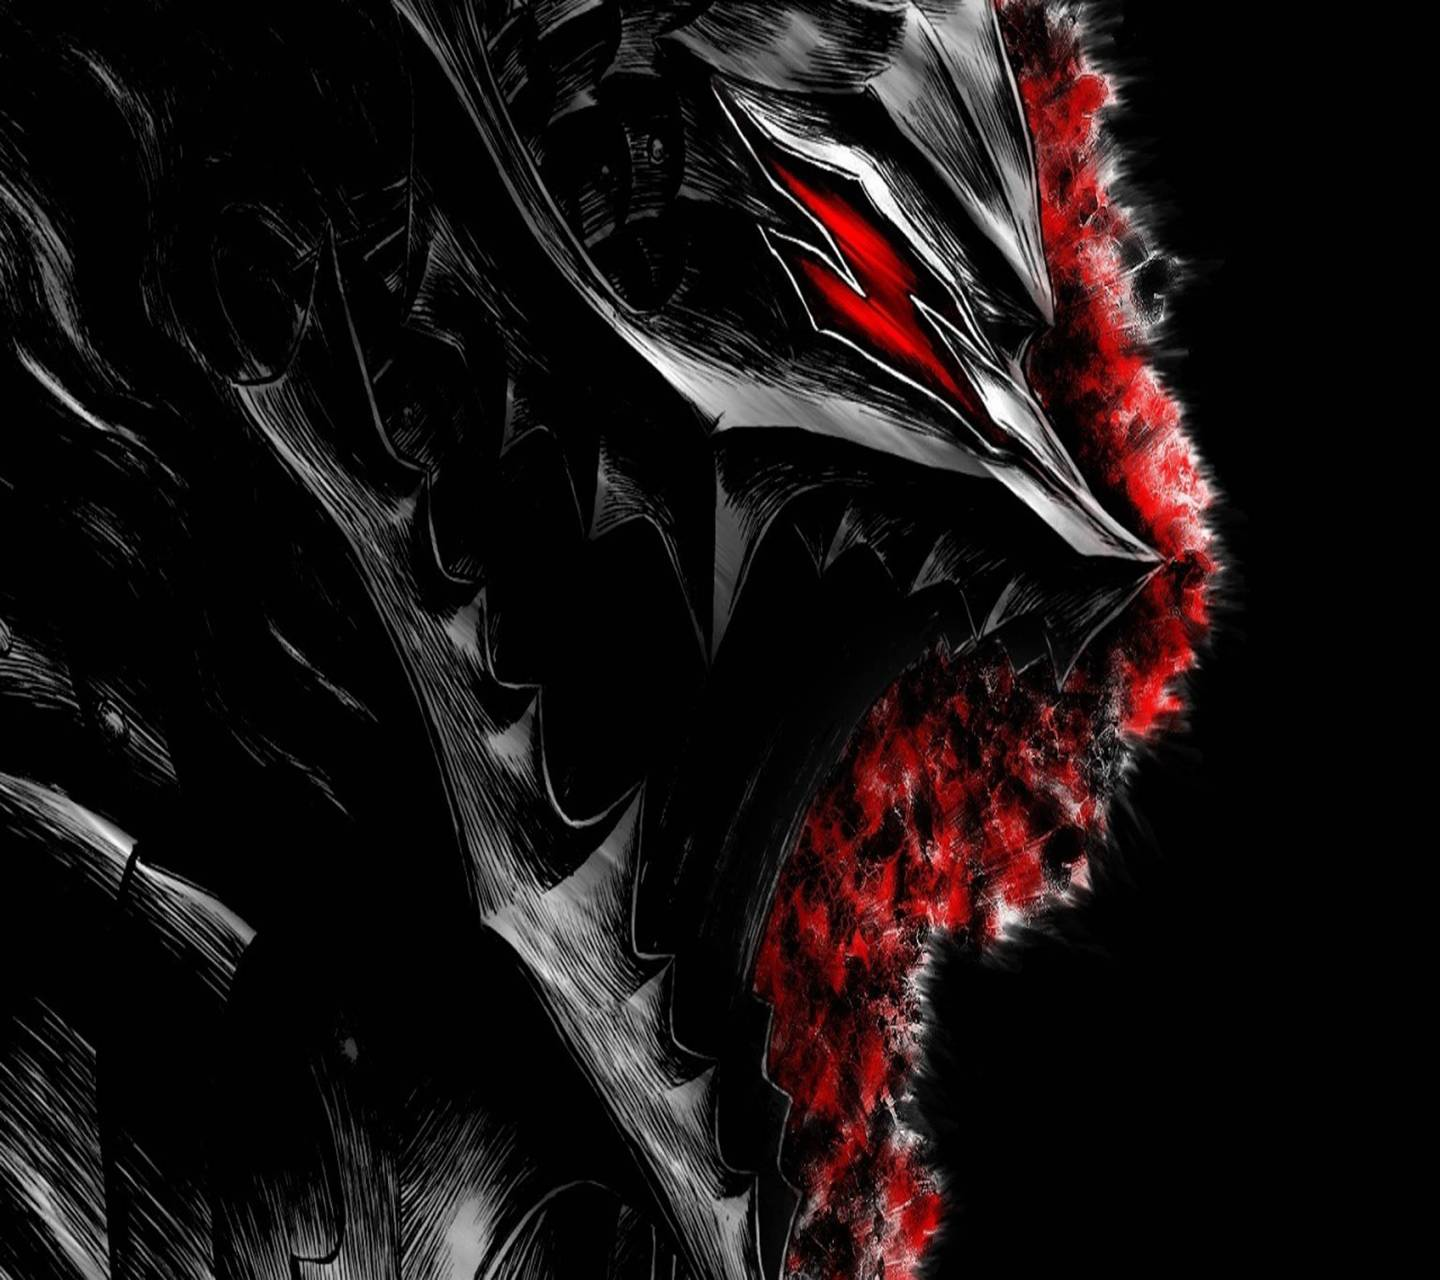 Berserk Armor Wallpaper By Nellaflegna 2f Free On Zedge